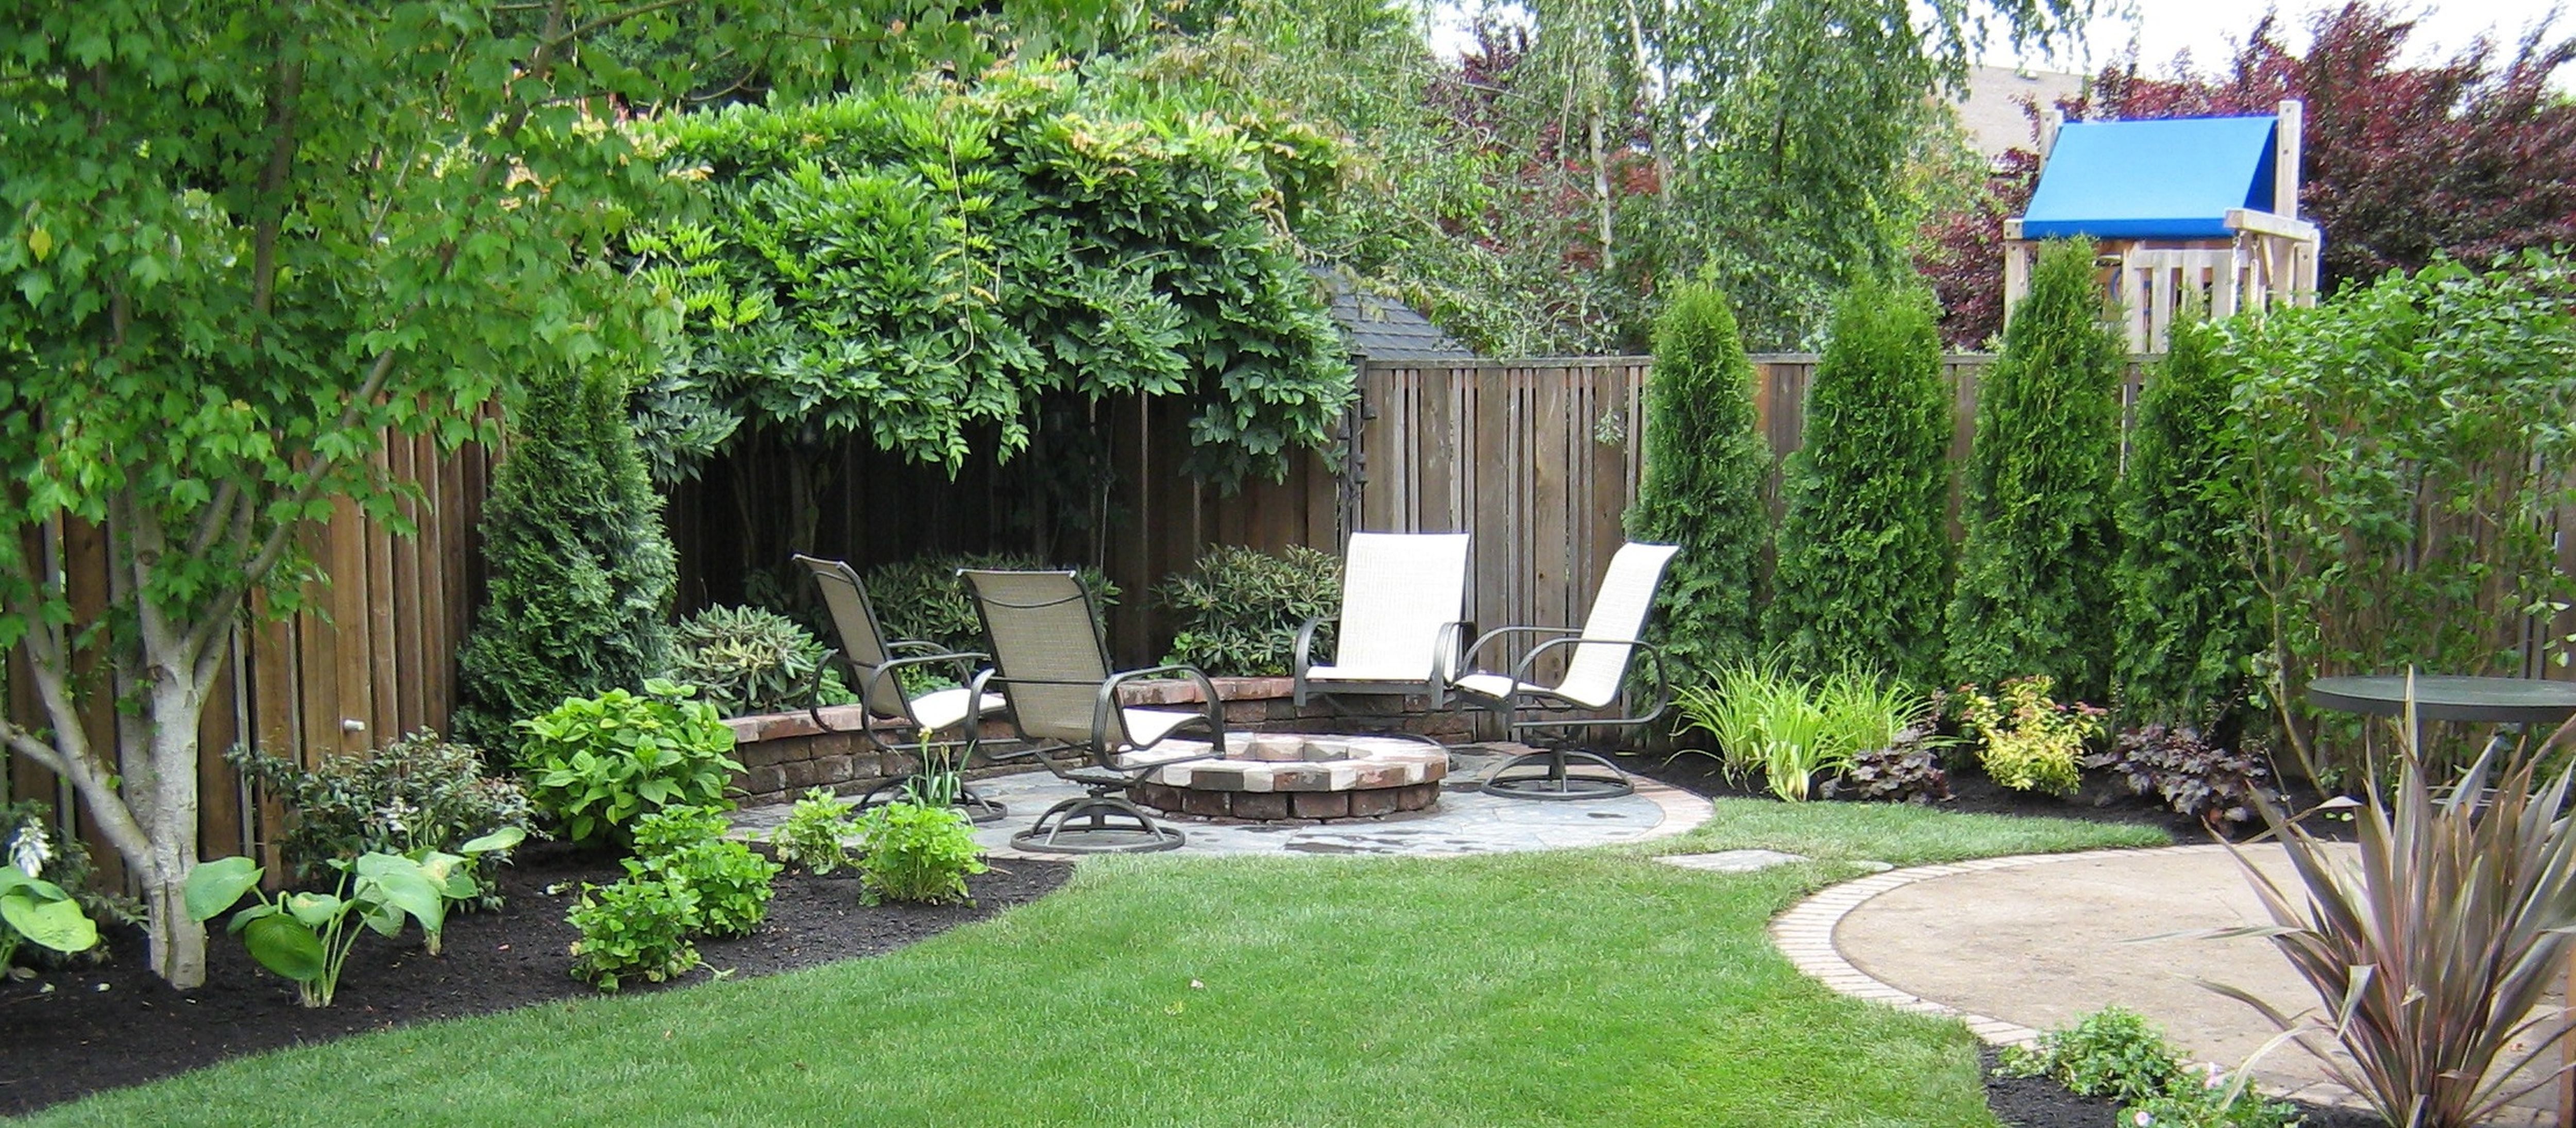 Simple landscaping ideas for a small space simple for Patio landscaping